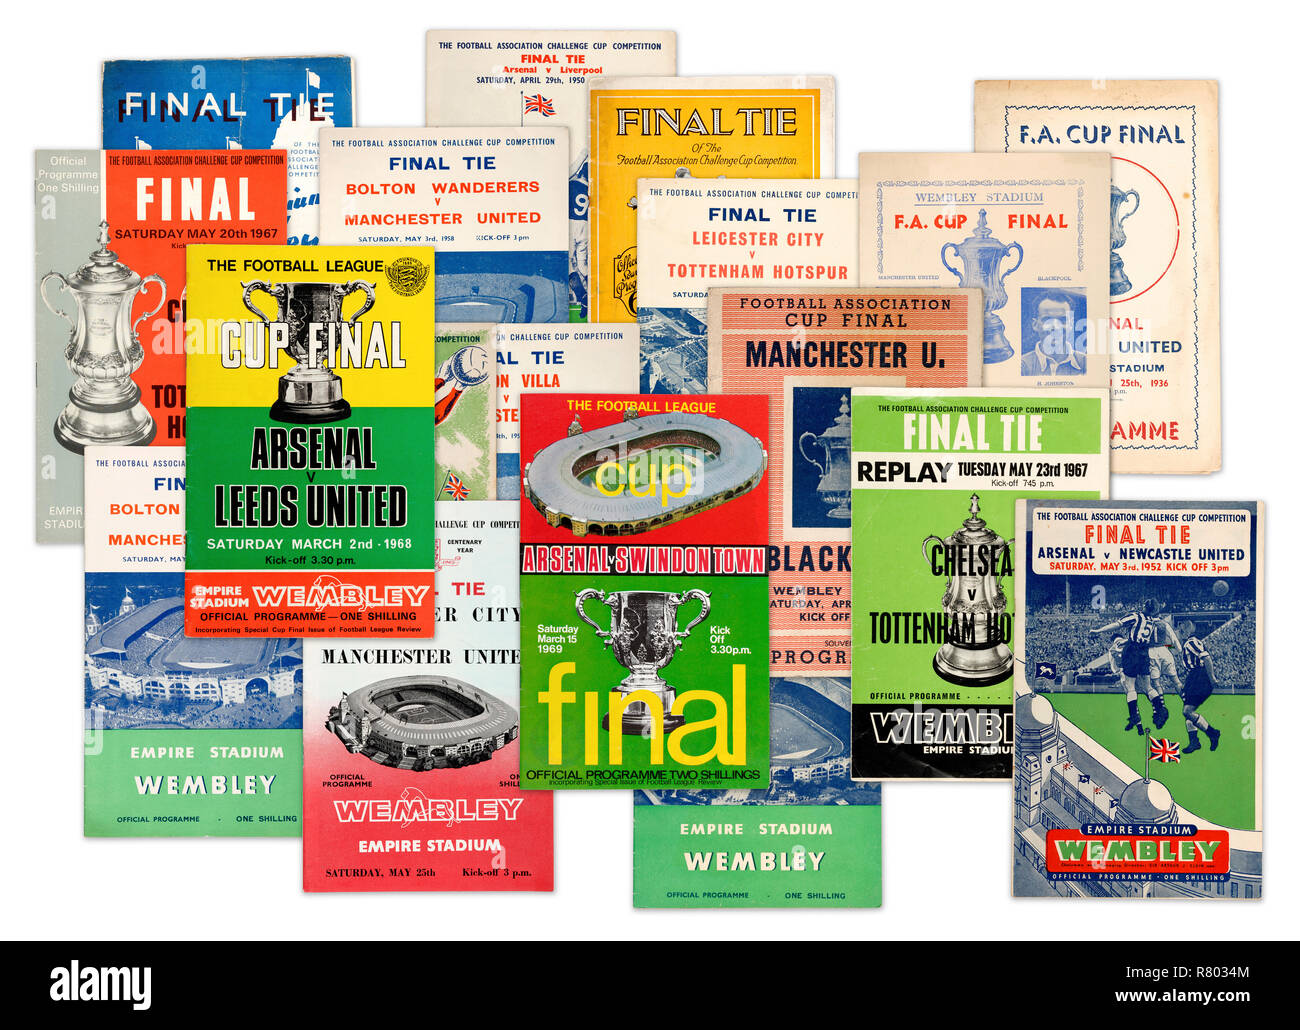 A collection of FA Challenge Cup Final official programmes from the 1930's 1940's 1950's and 1960's (digital composite) - Stock Image